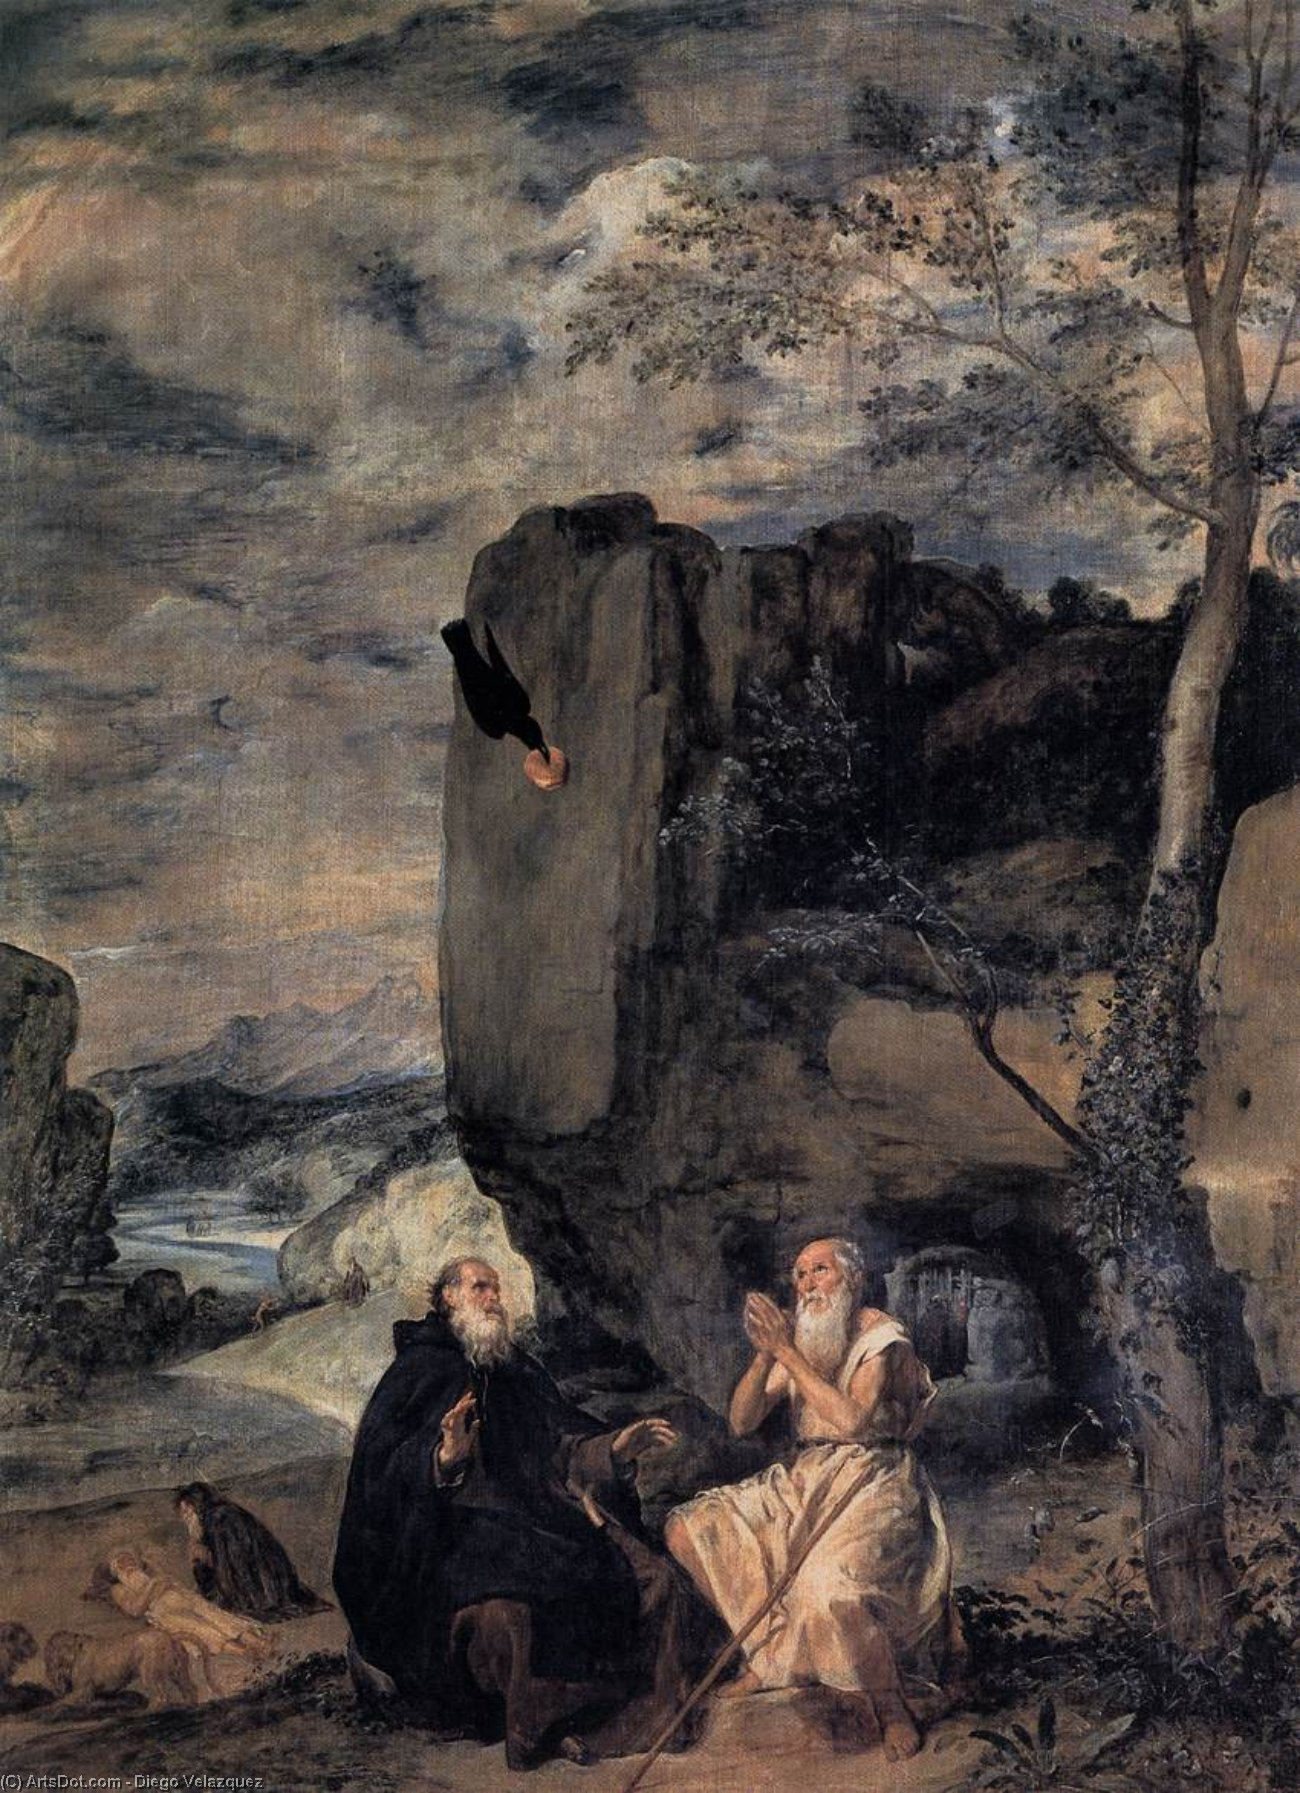 St. Anthony the Abbot and St. Paul the First Hermit, Oil On Canvas by Diego Velazquez (1599-1660, Spain)